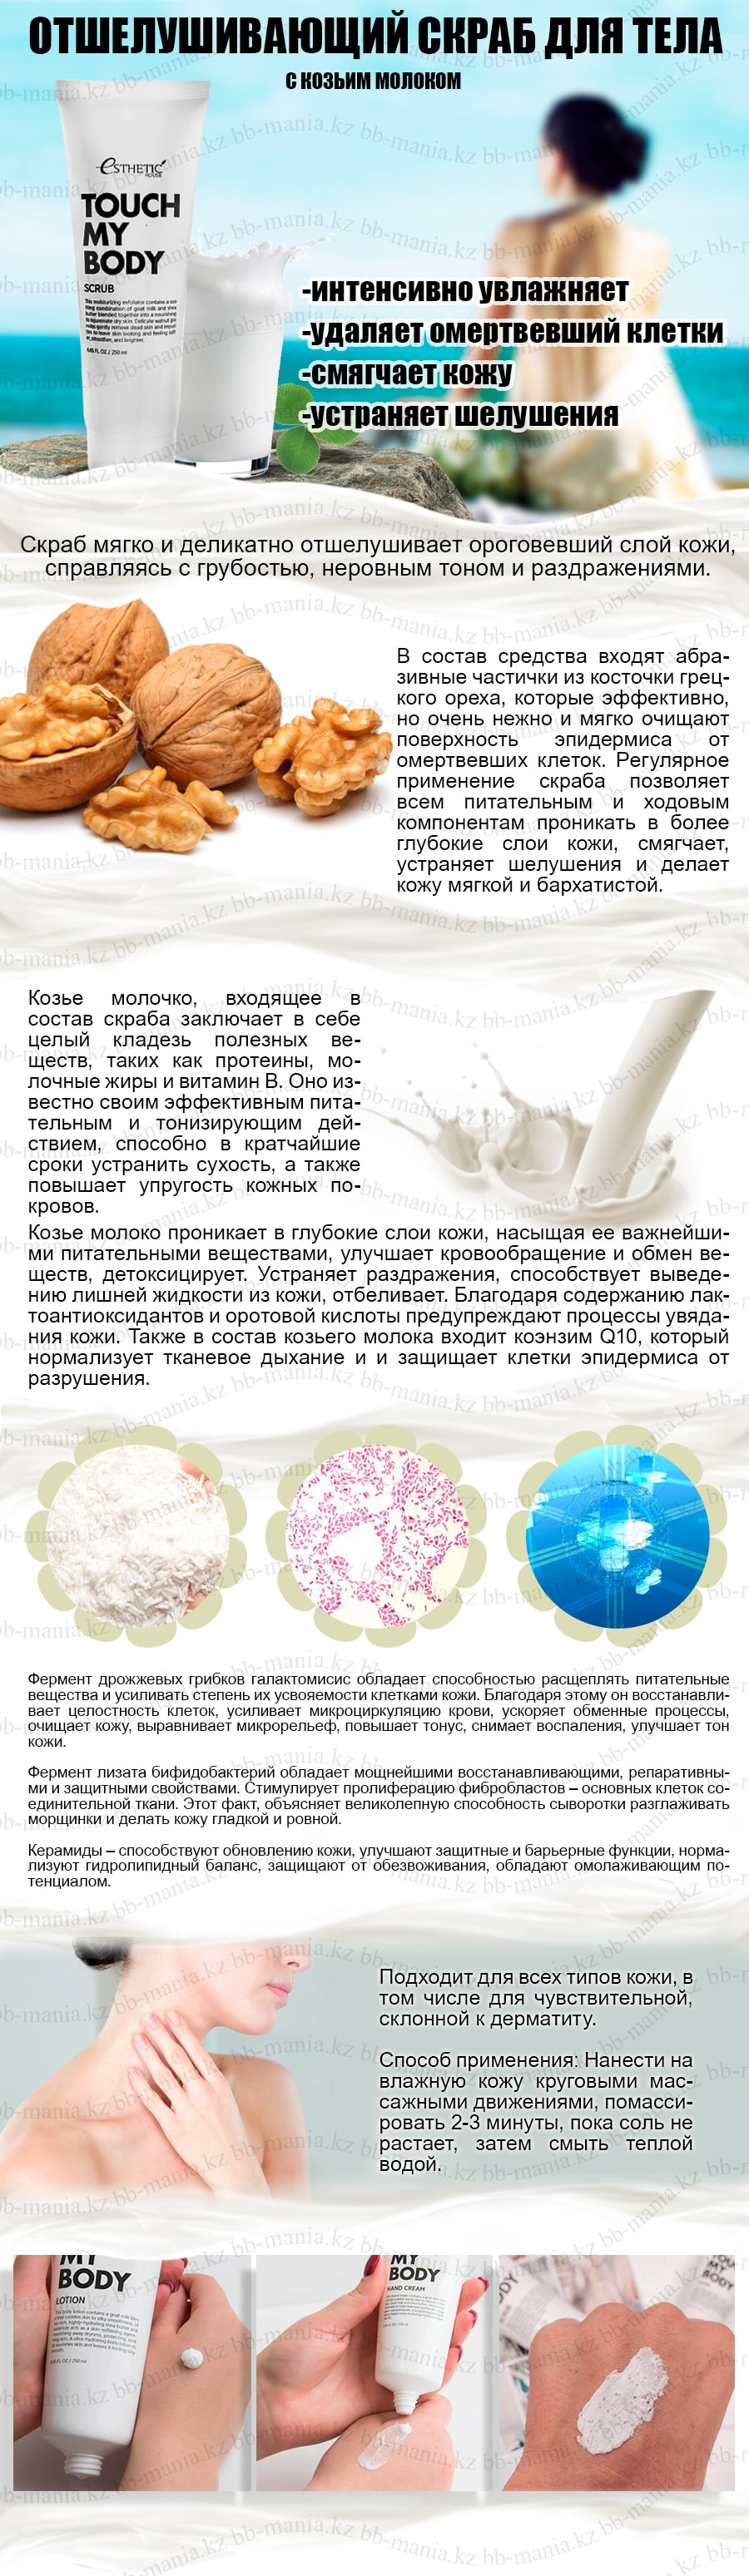 Touch-My-Body-Goat-Milk-Body-Scrub-[ESTHETIC-HOUSE]-min